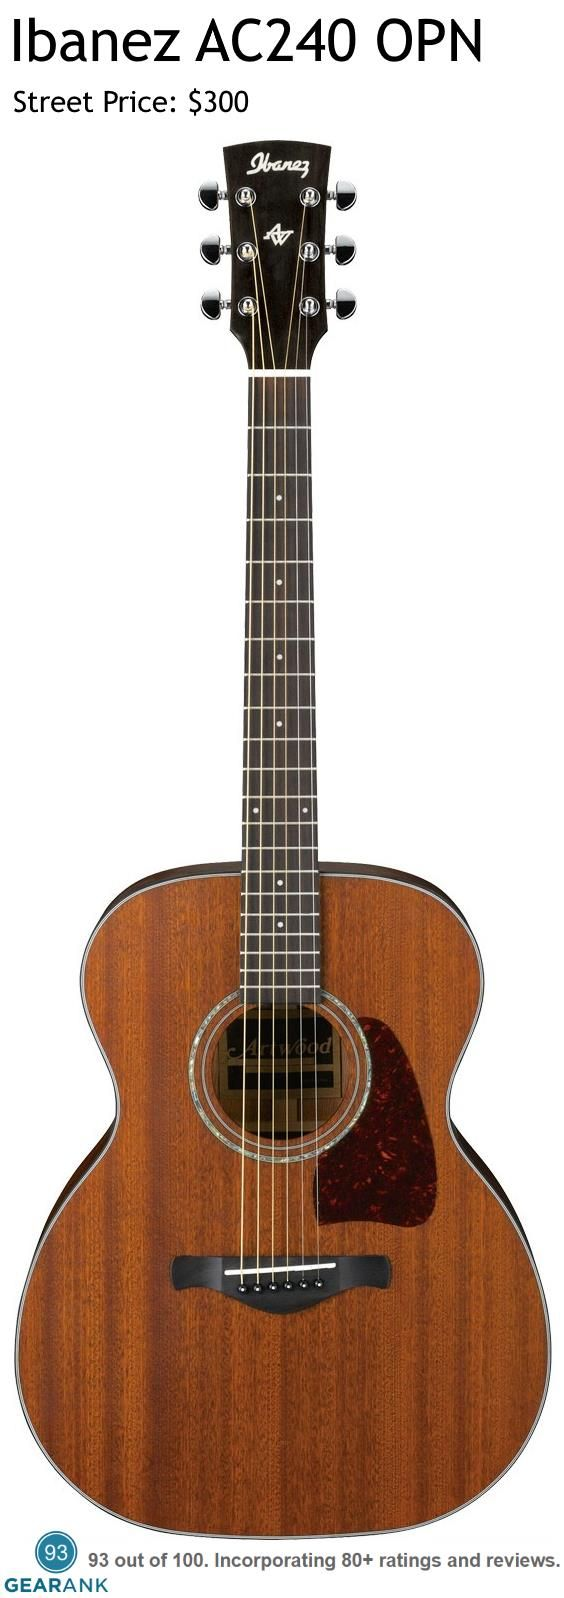 Ibanez Ac240 Opn This All Mahogany Acoustic Guitar Is One Of The Highest Rated Acoustic Guitars Under 300 Acoustic Guitar Best Acoustic Guitar Guitar